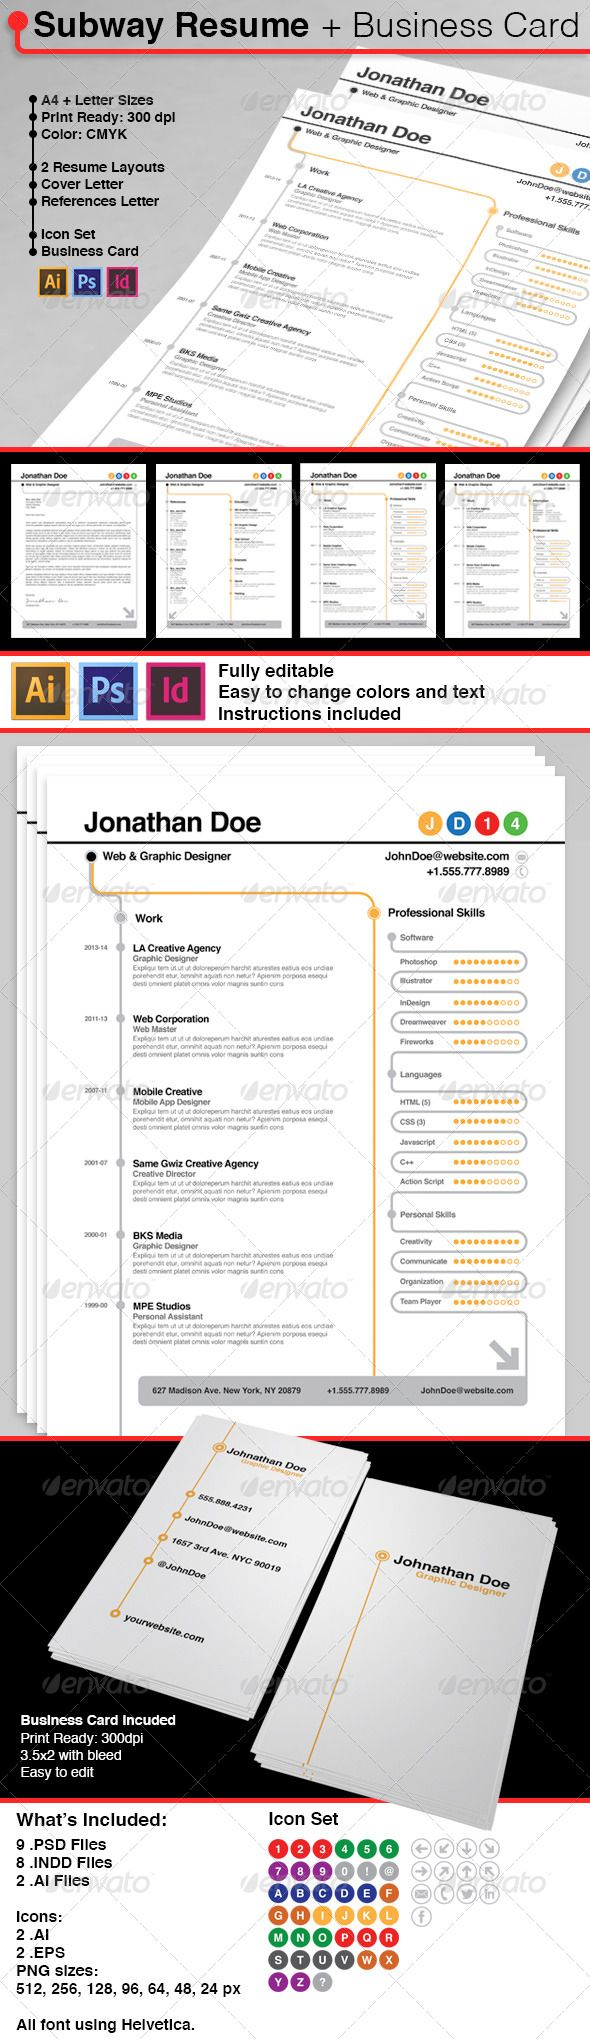 22 Best Curriculum Vitae Design Images On Pinterest Resume Cv